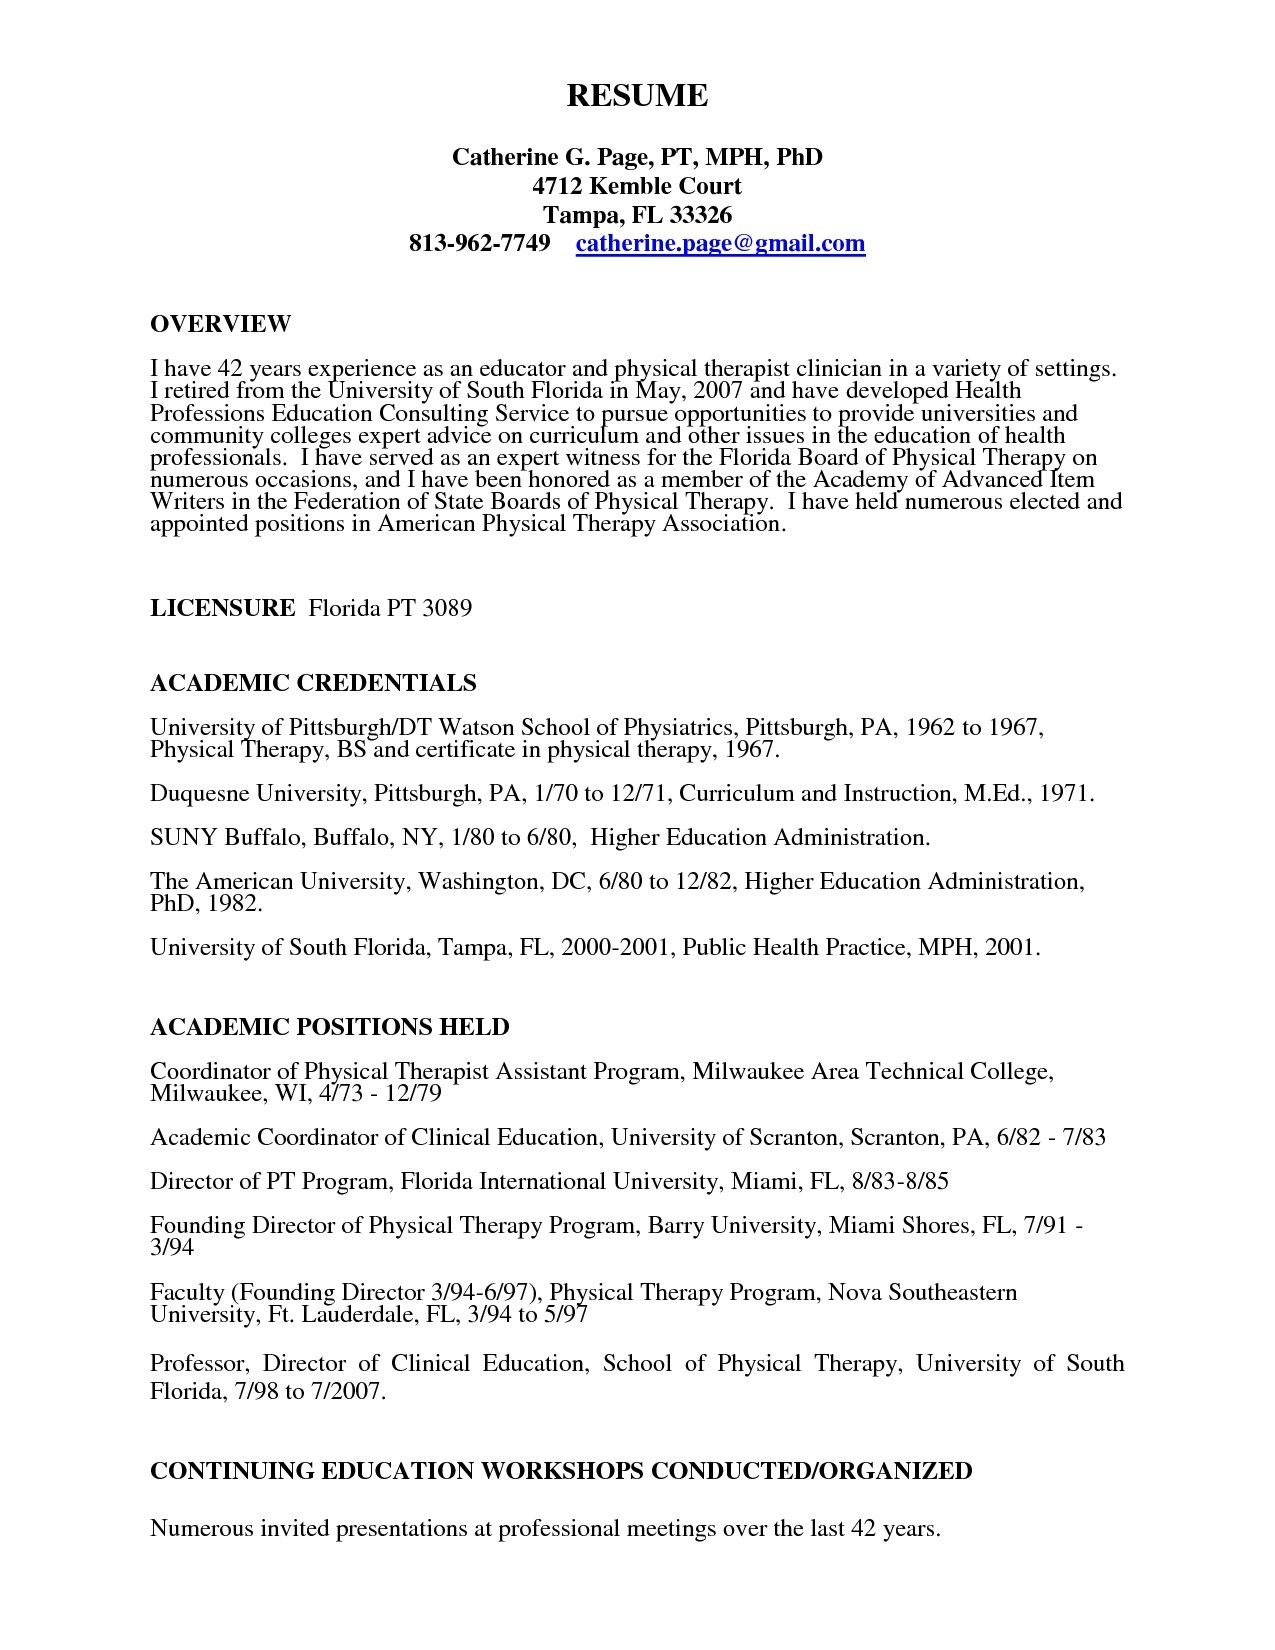 Physical therapist Resume - 58 Wondeful Physical therapy Resume Sample Occupylondonsos